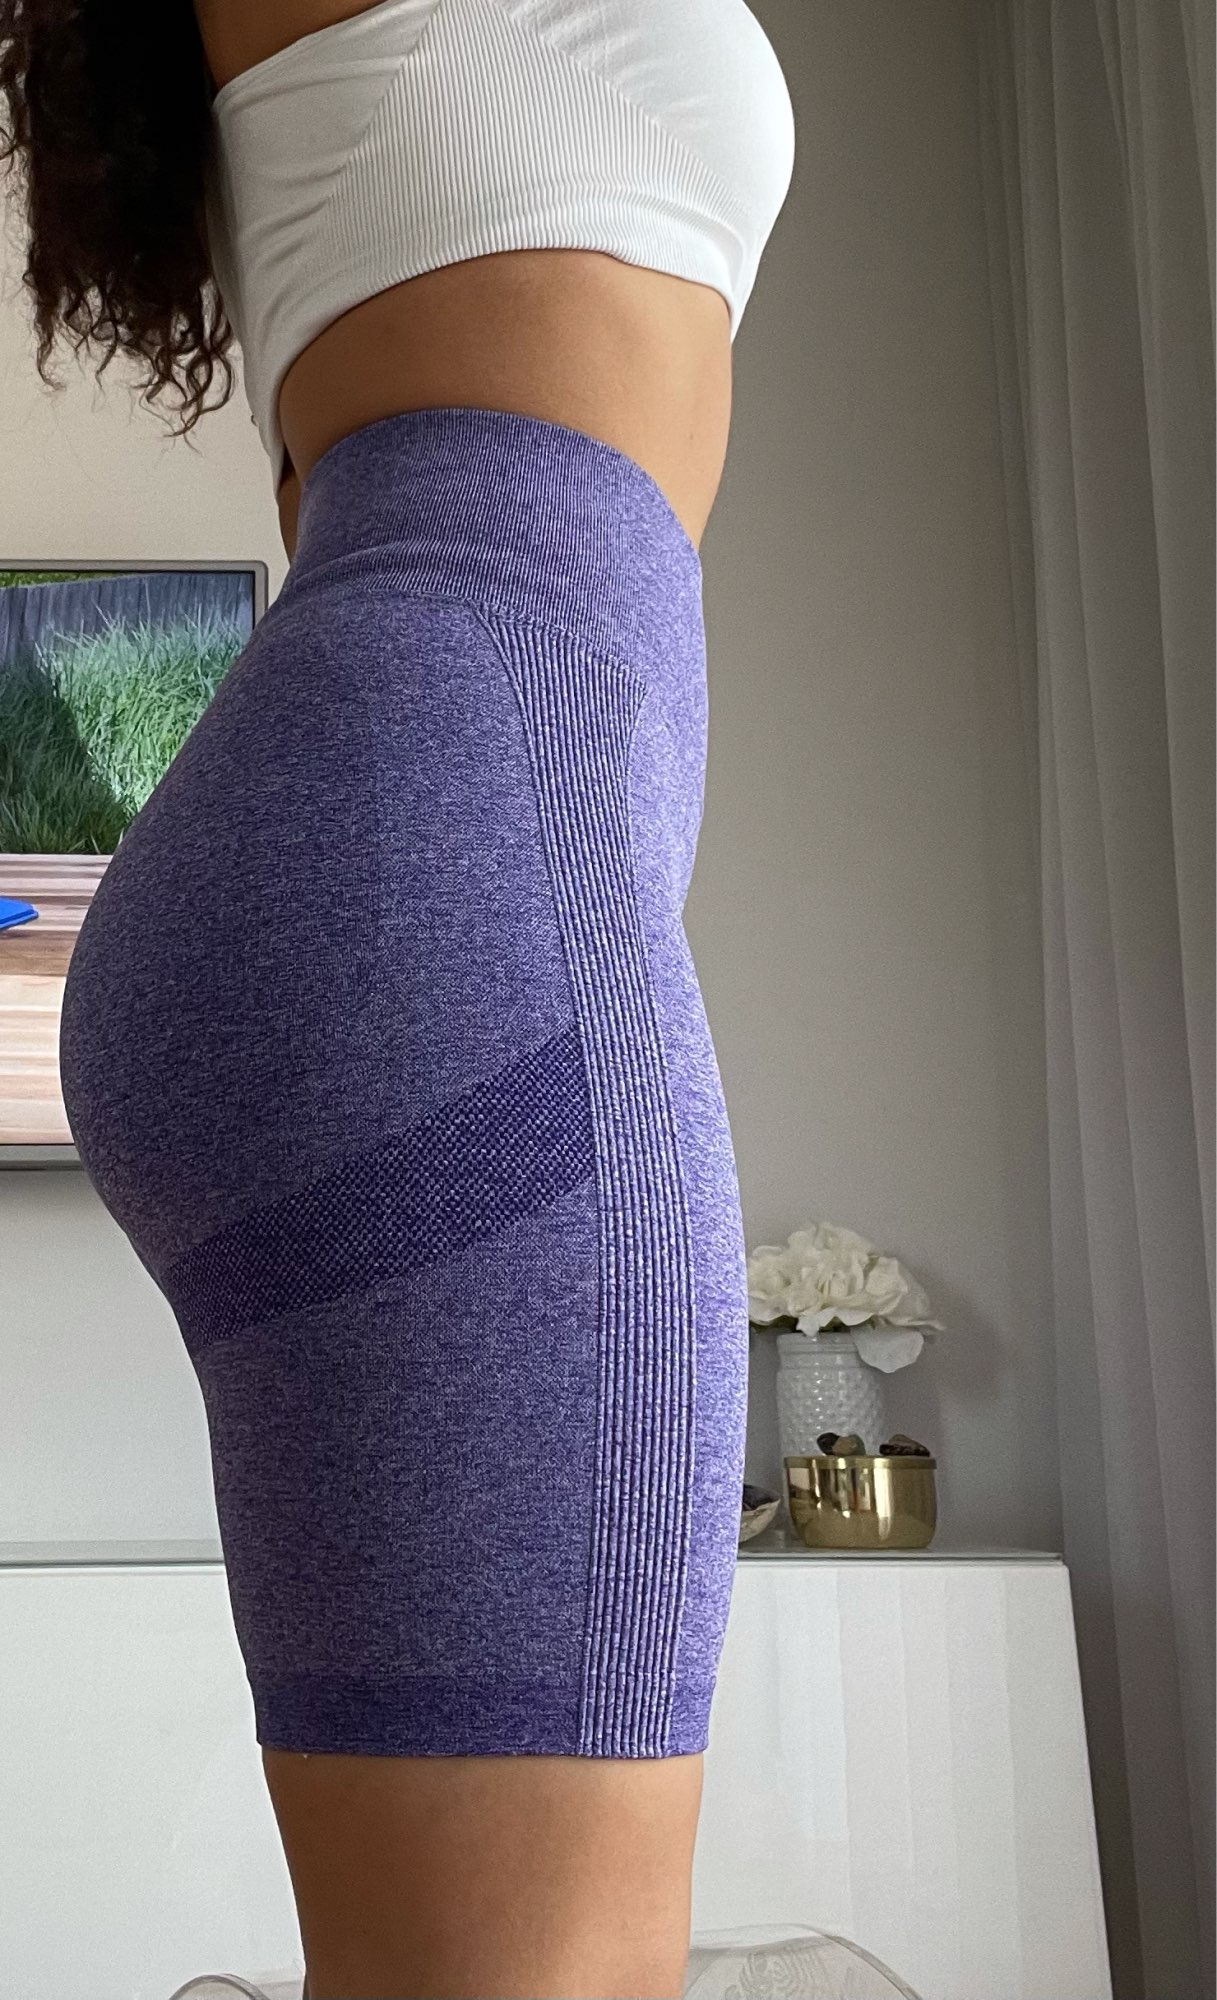 Seamless Sport Shorts for Women With Push Up photo review